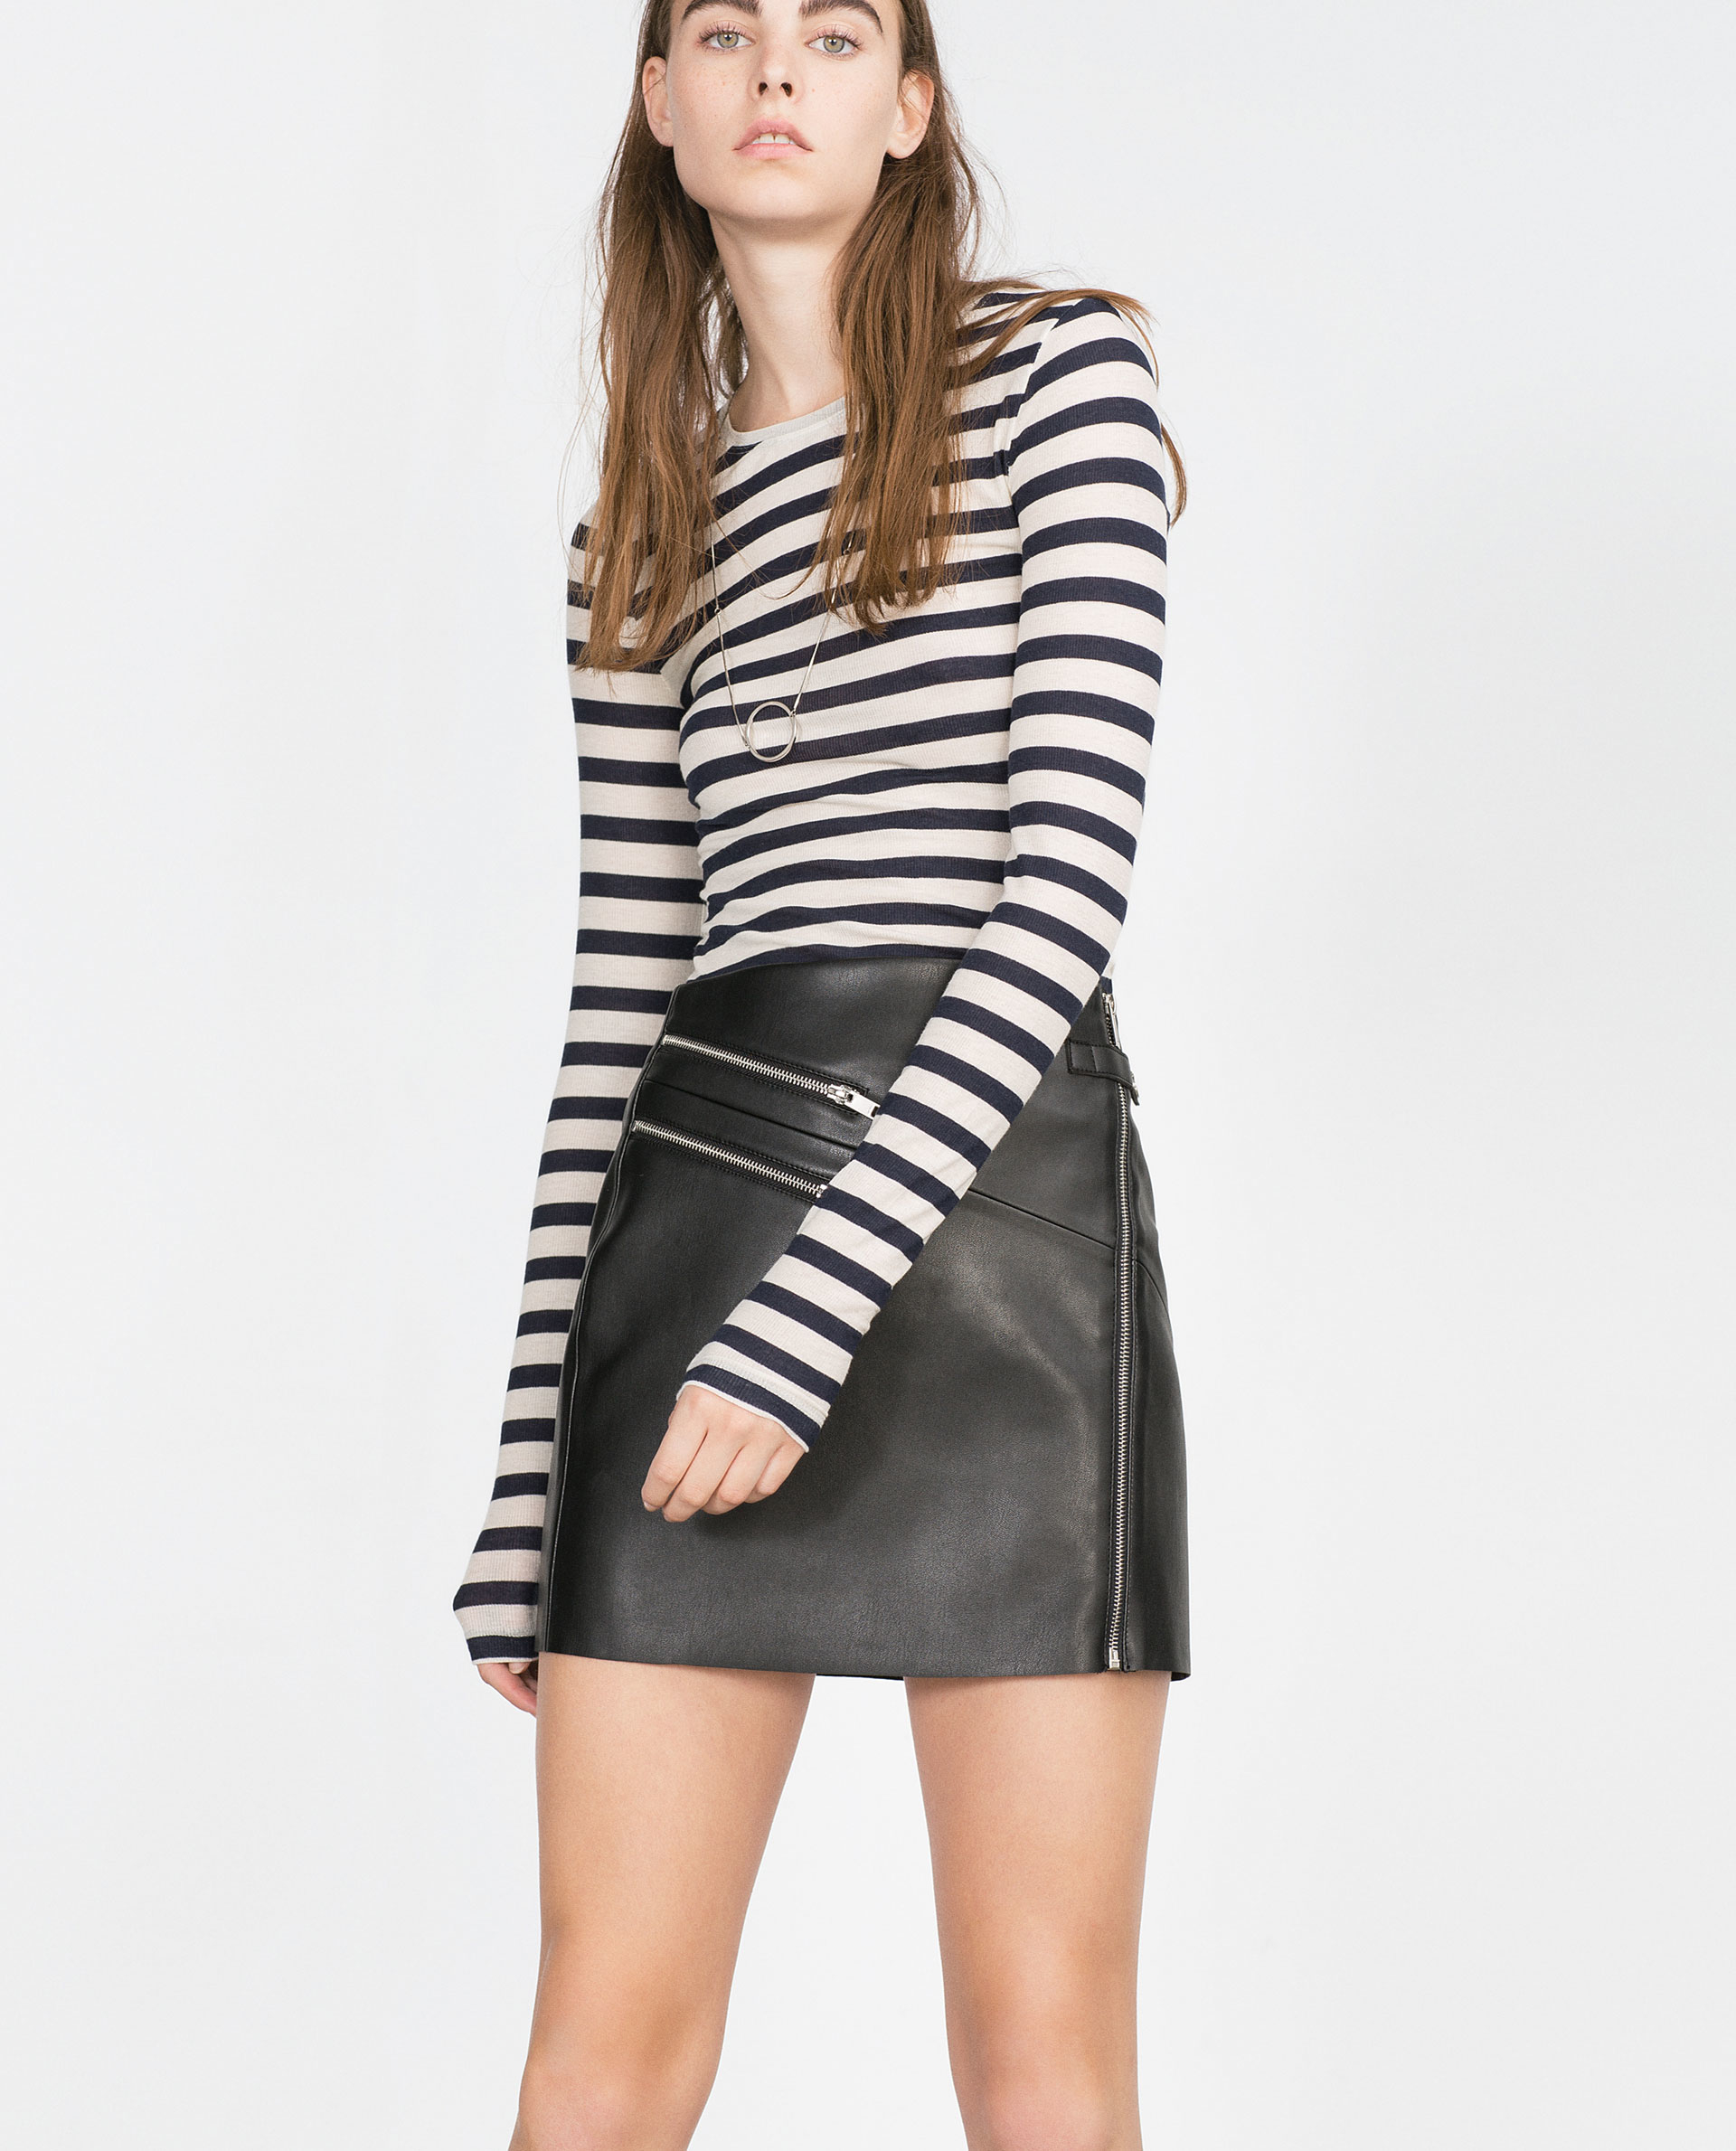 Black Faux Leather Skirt - Skirts